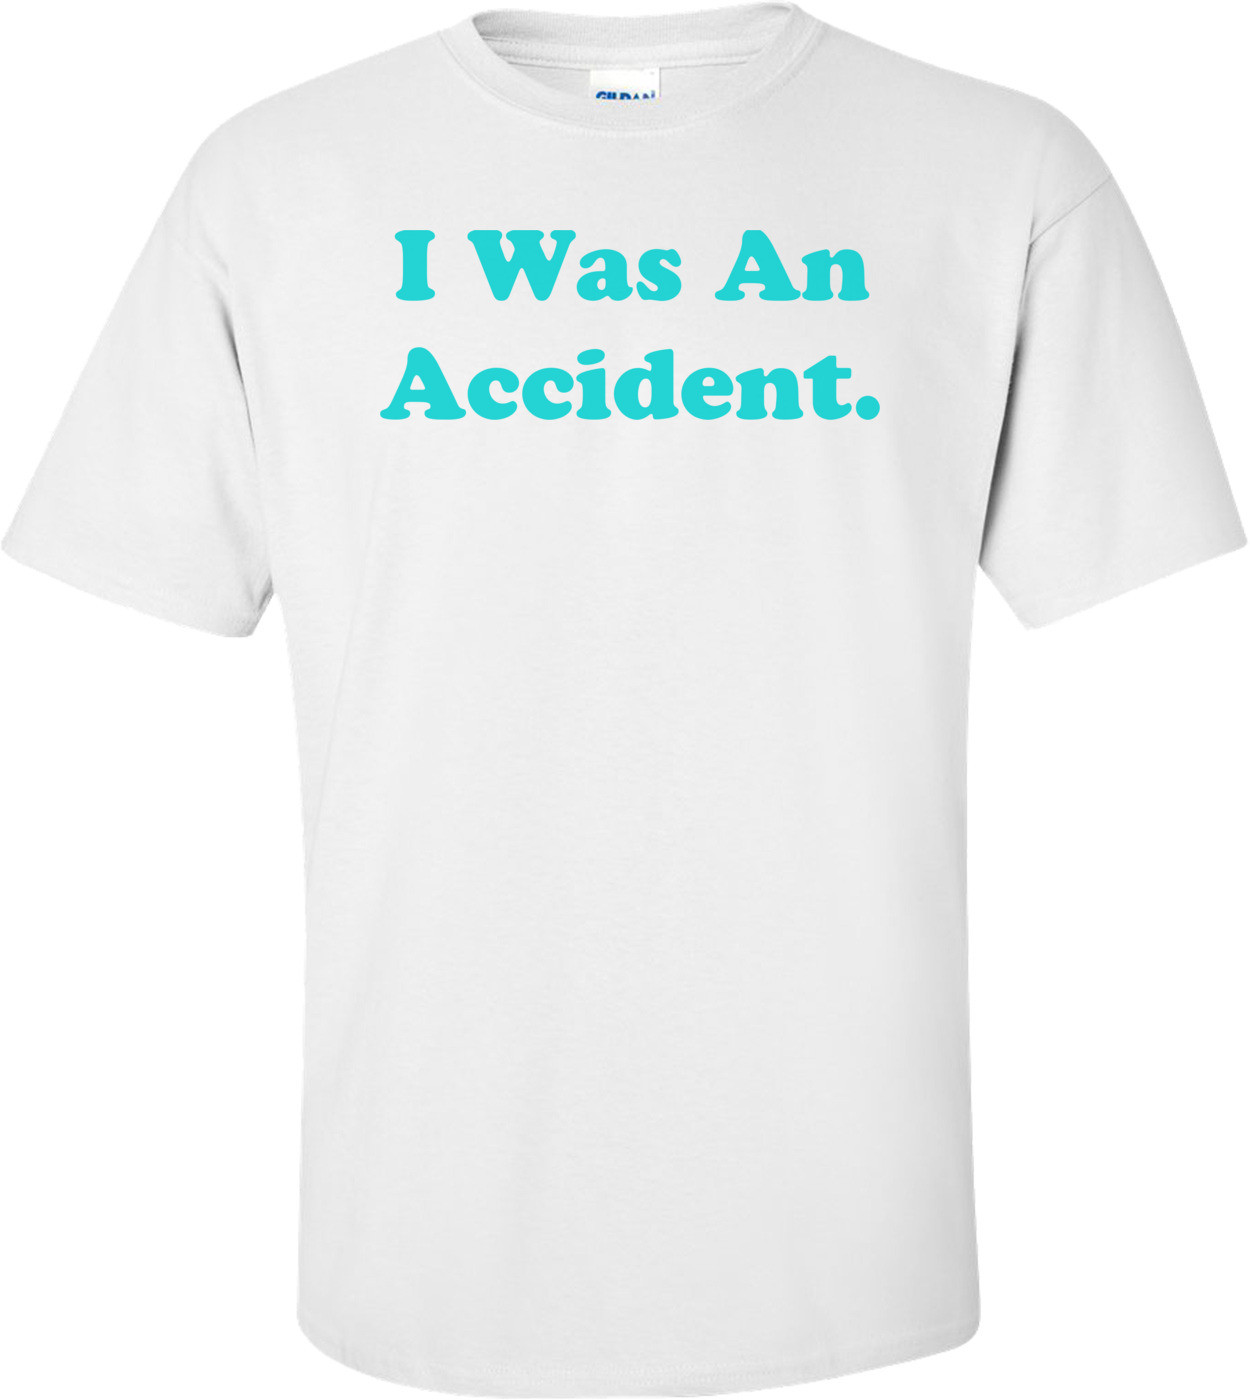 I Was An Accident. Shirt